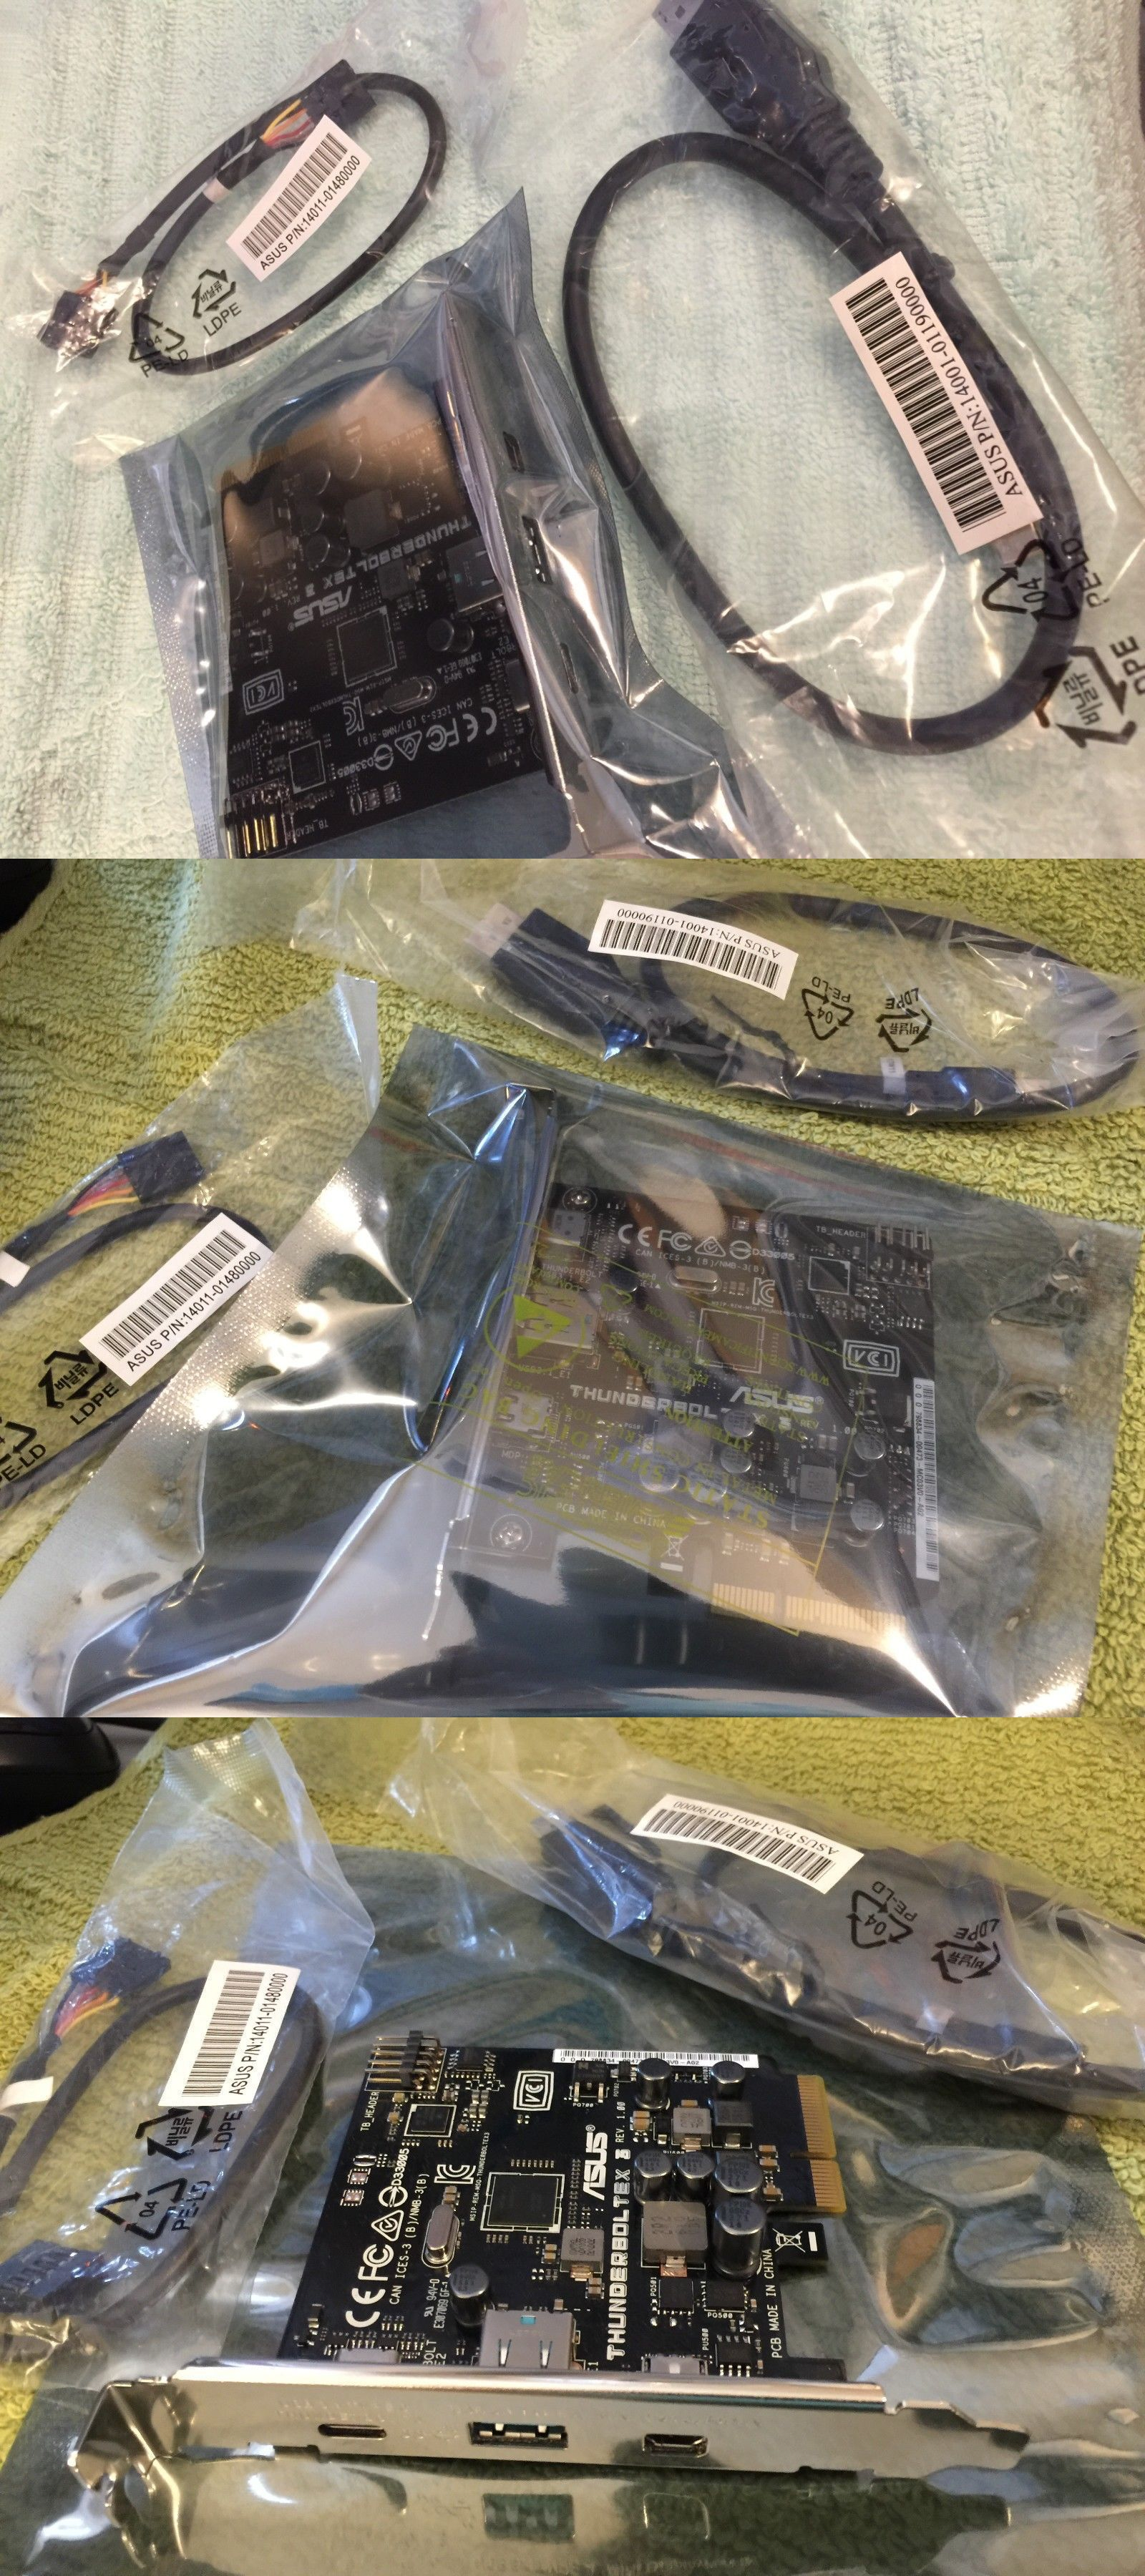 Motherboard components and accs 182090 asus tuf x299 mark